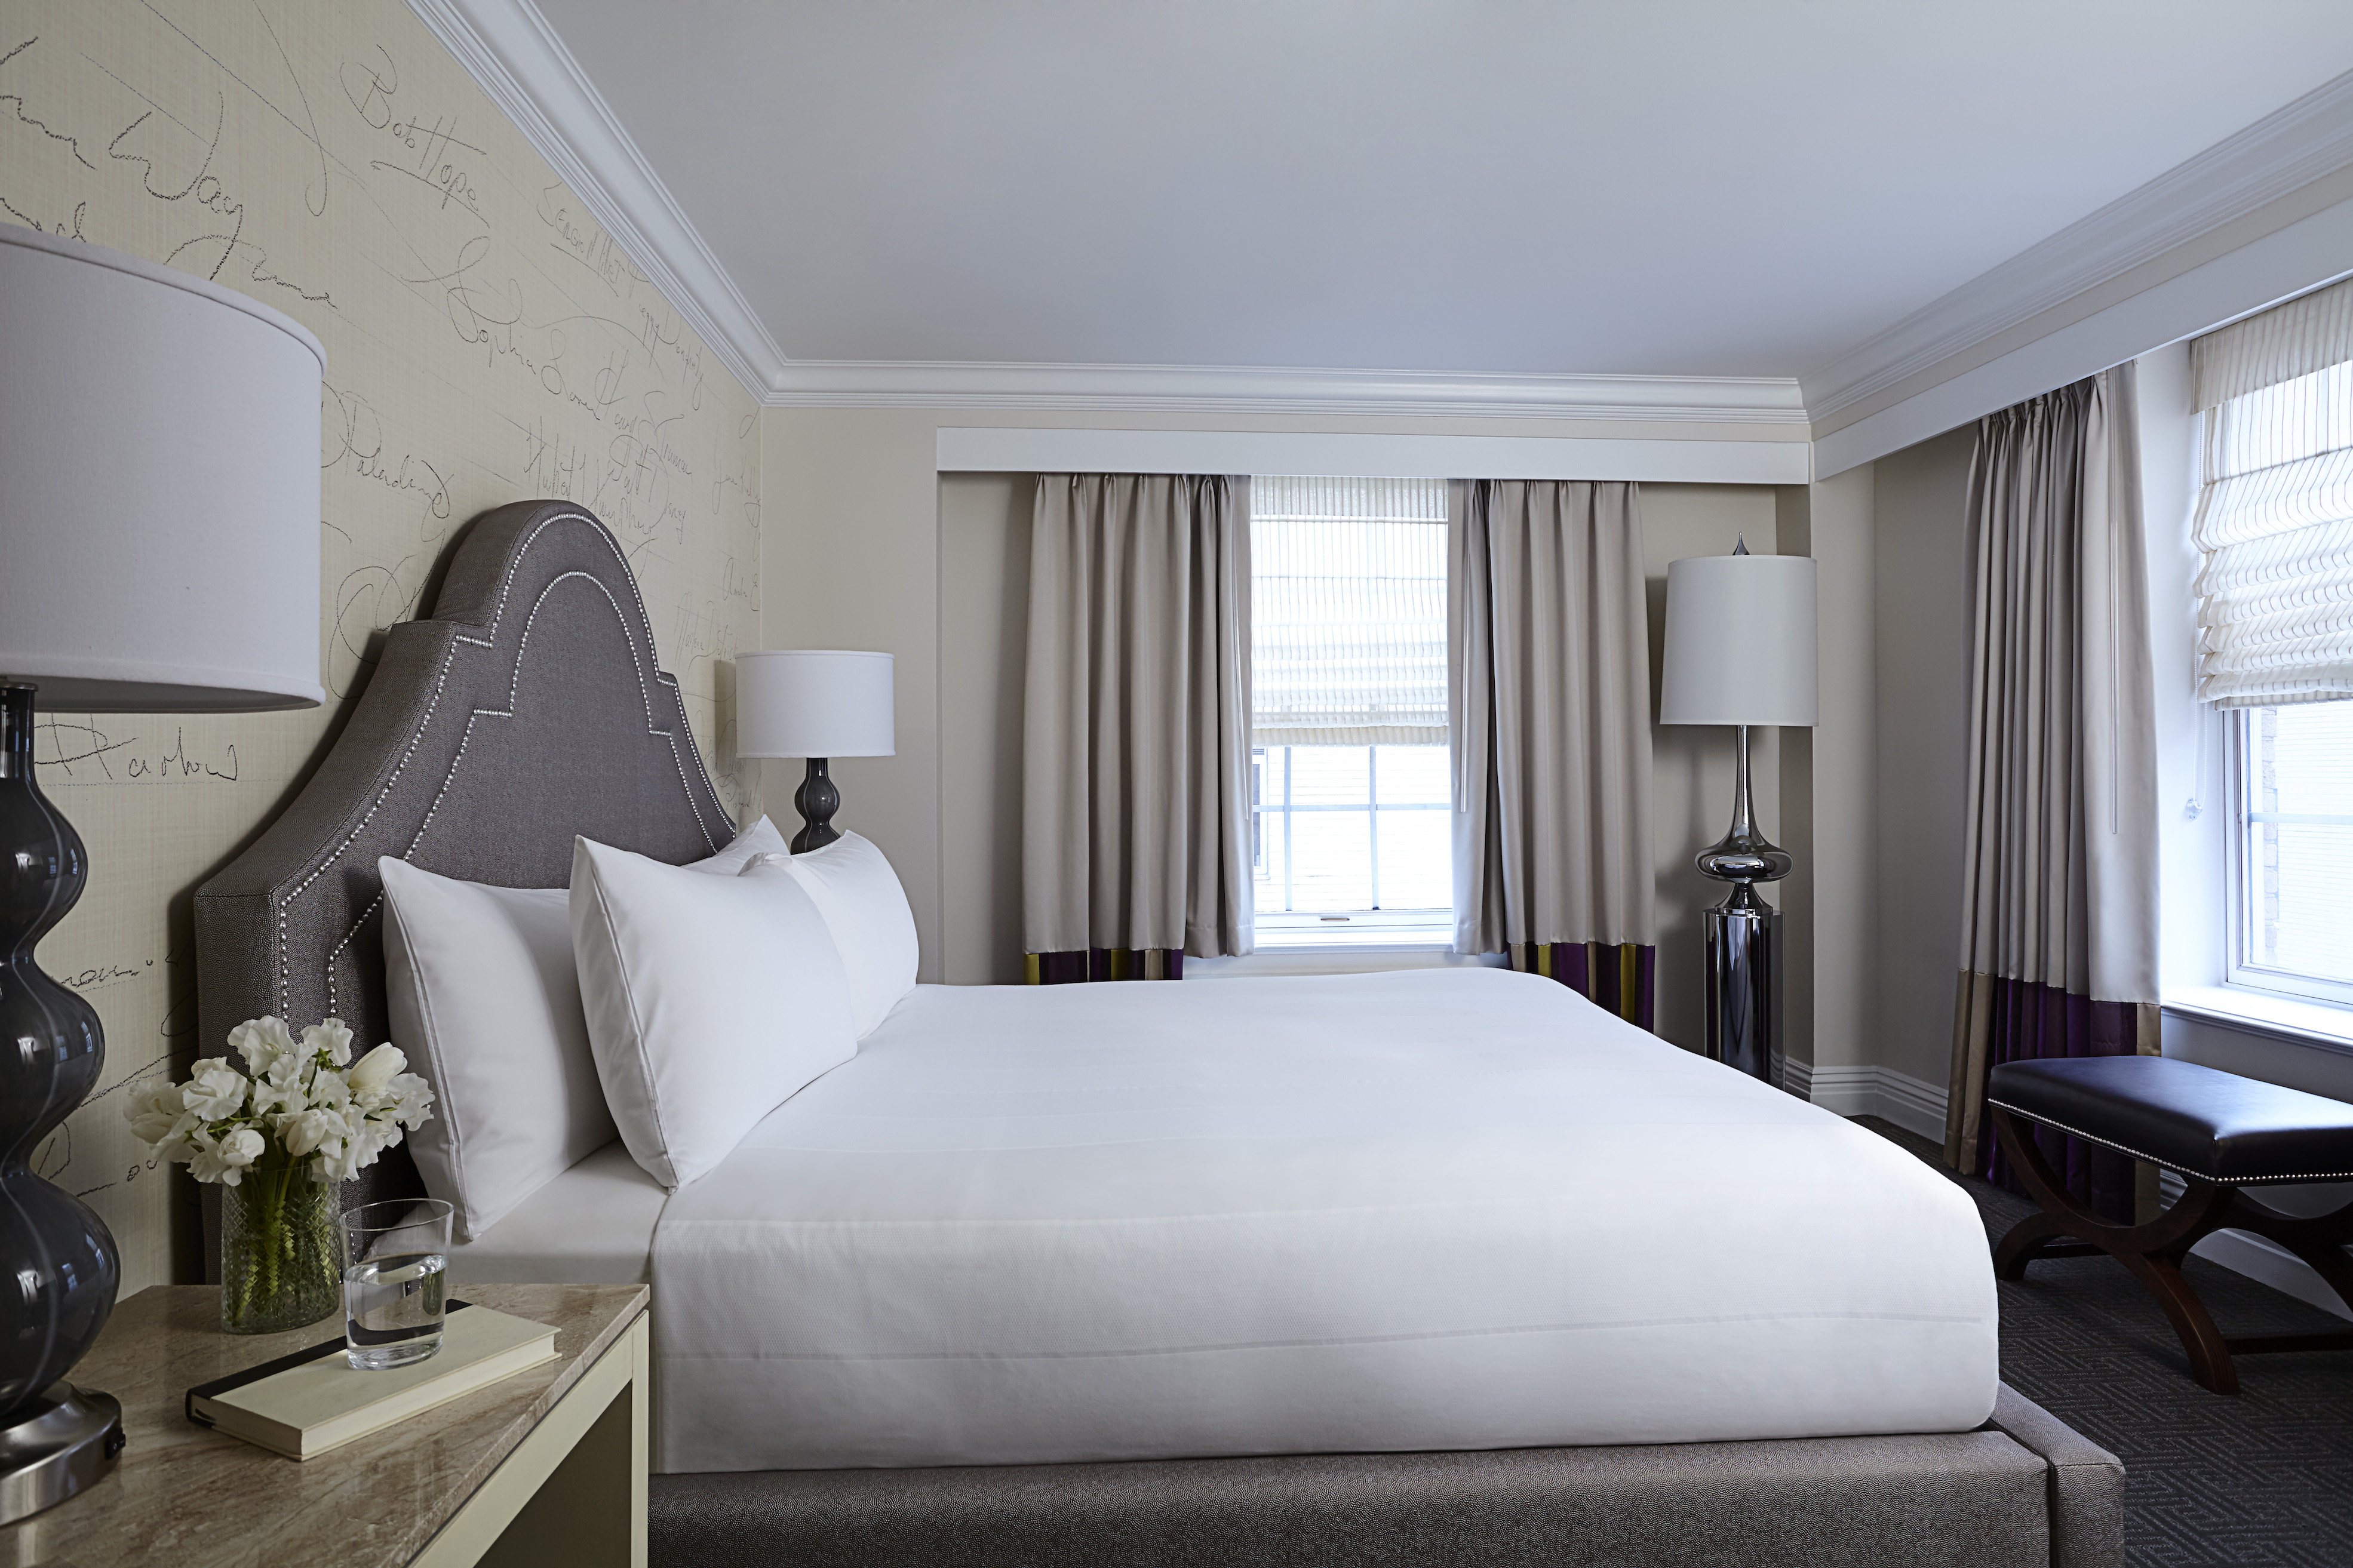 The Mayflower Hotel guestroom